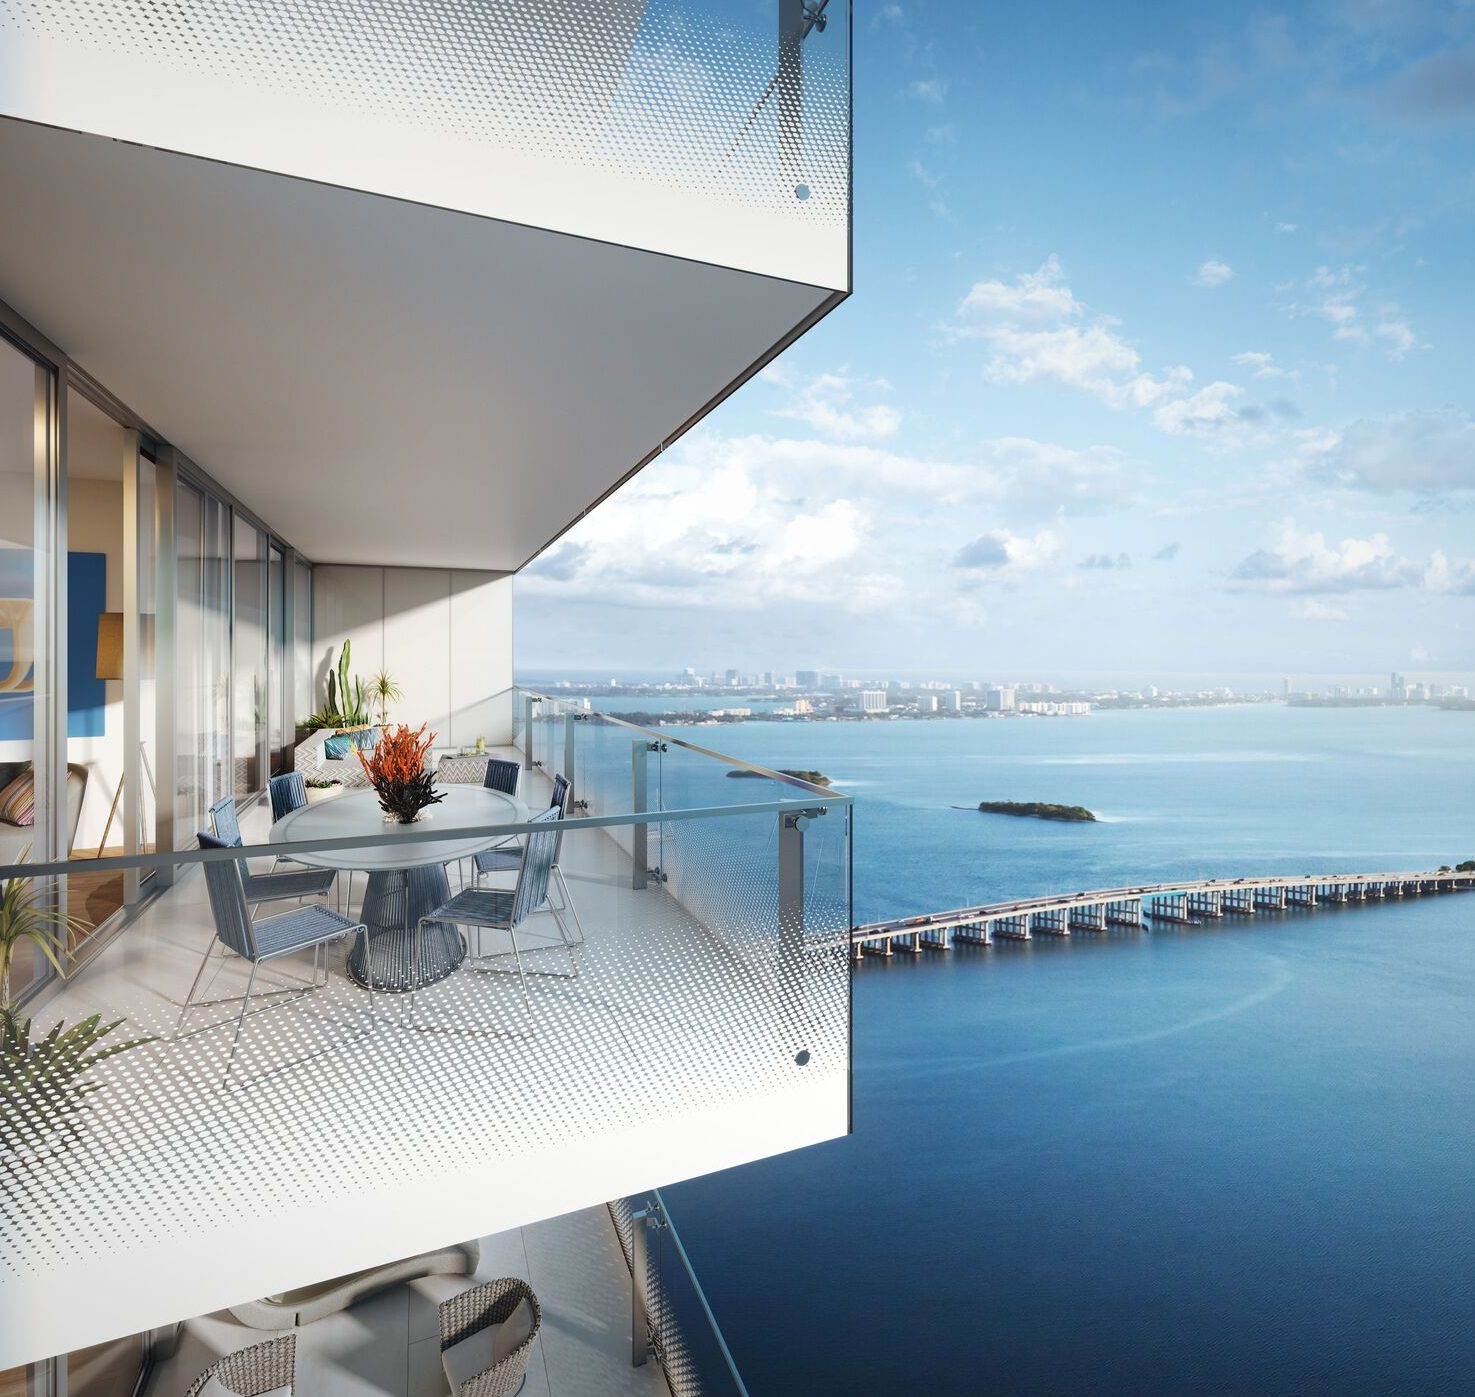 Missoni Baia miami condo preconstruction Edgewater balcony